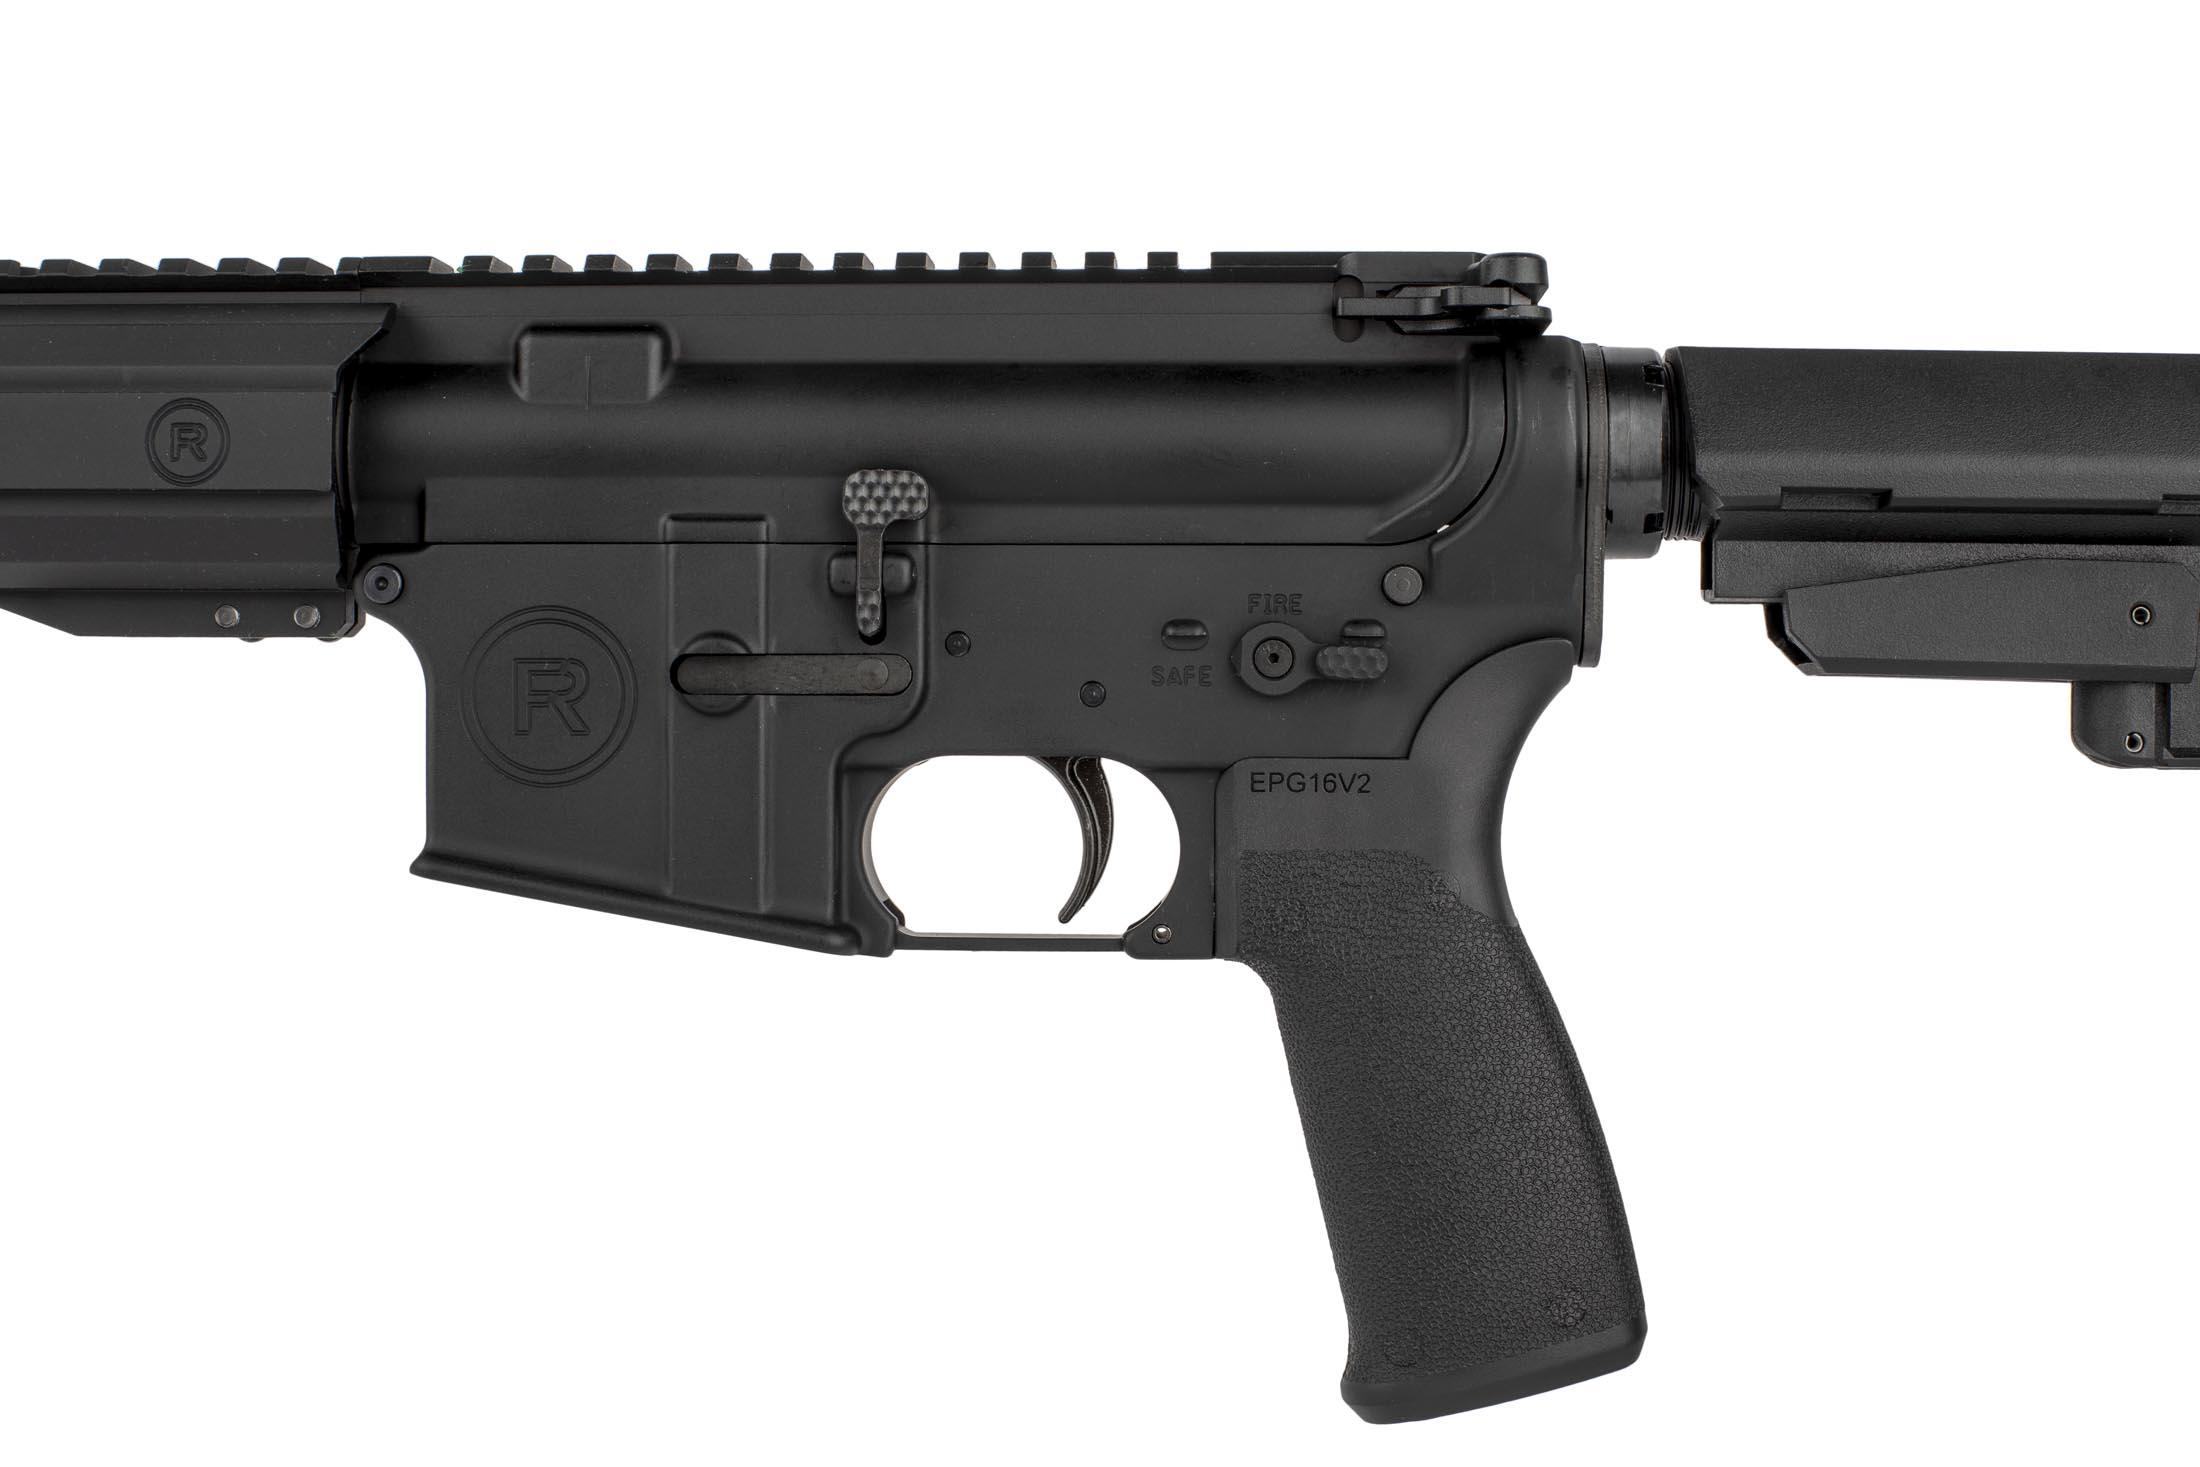 The 7.62x39 AR pistol from Radical Firearms comes with an extended billet bolt release